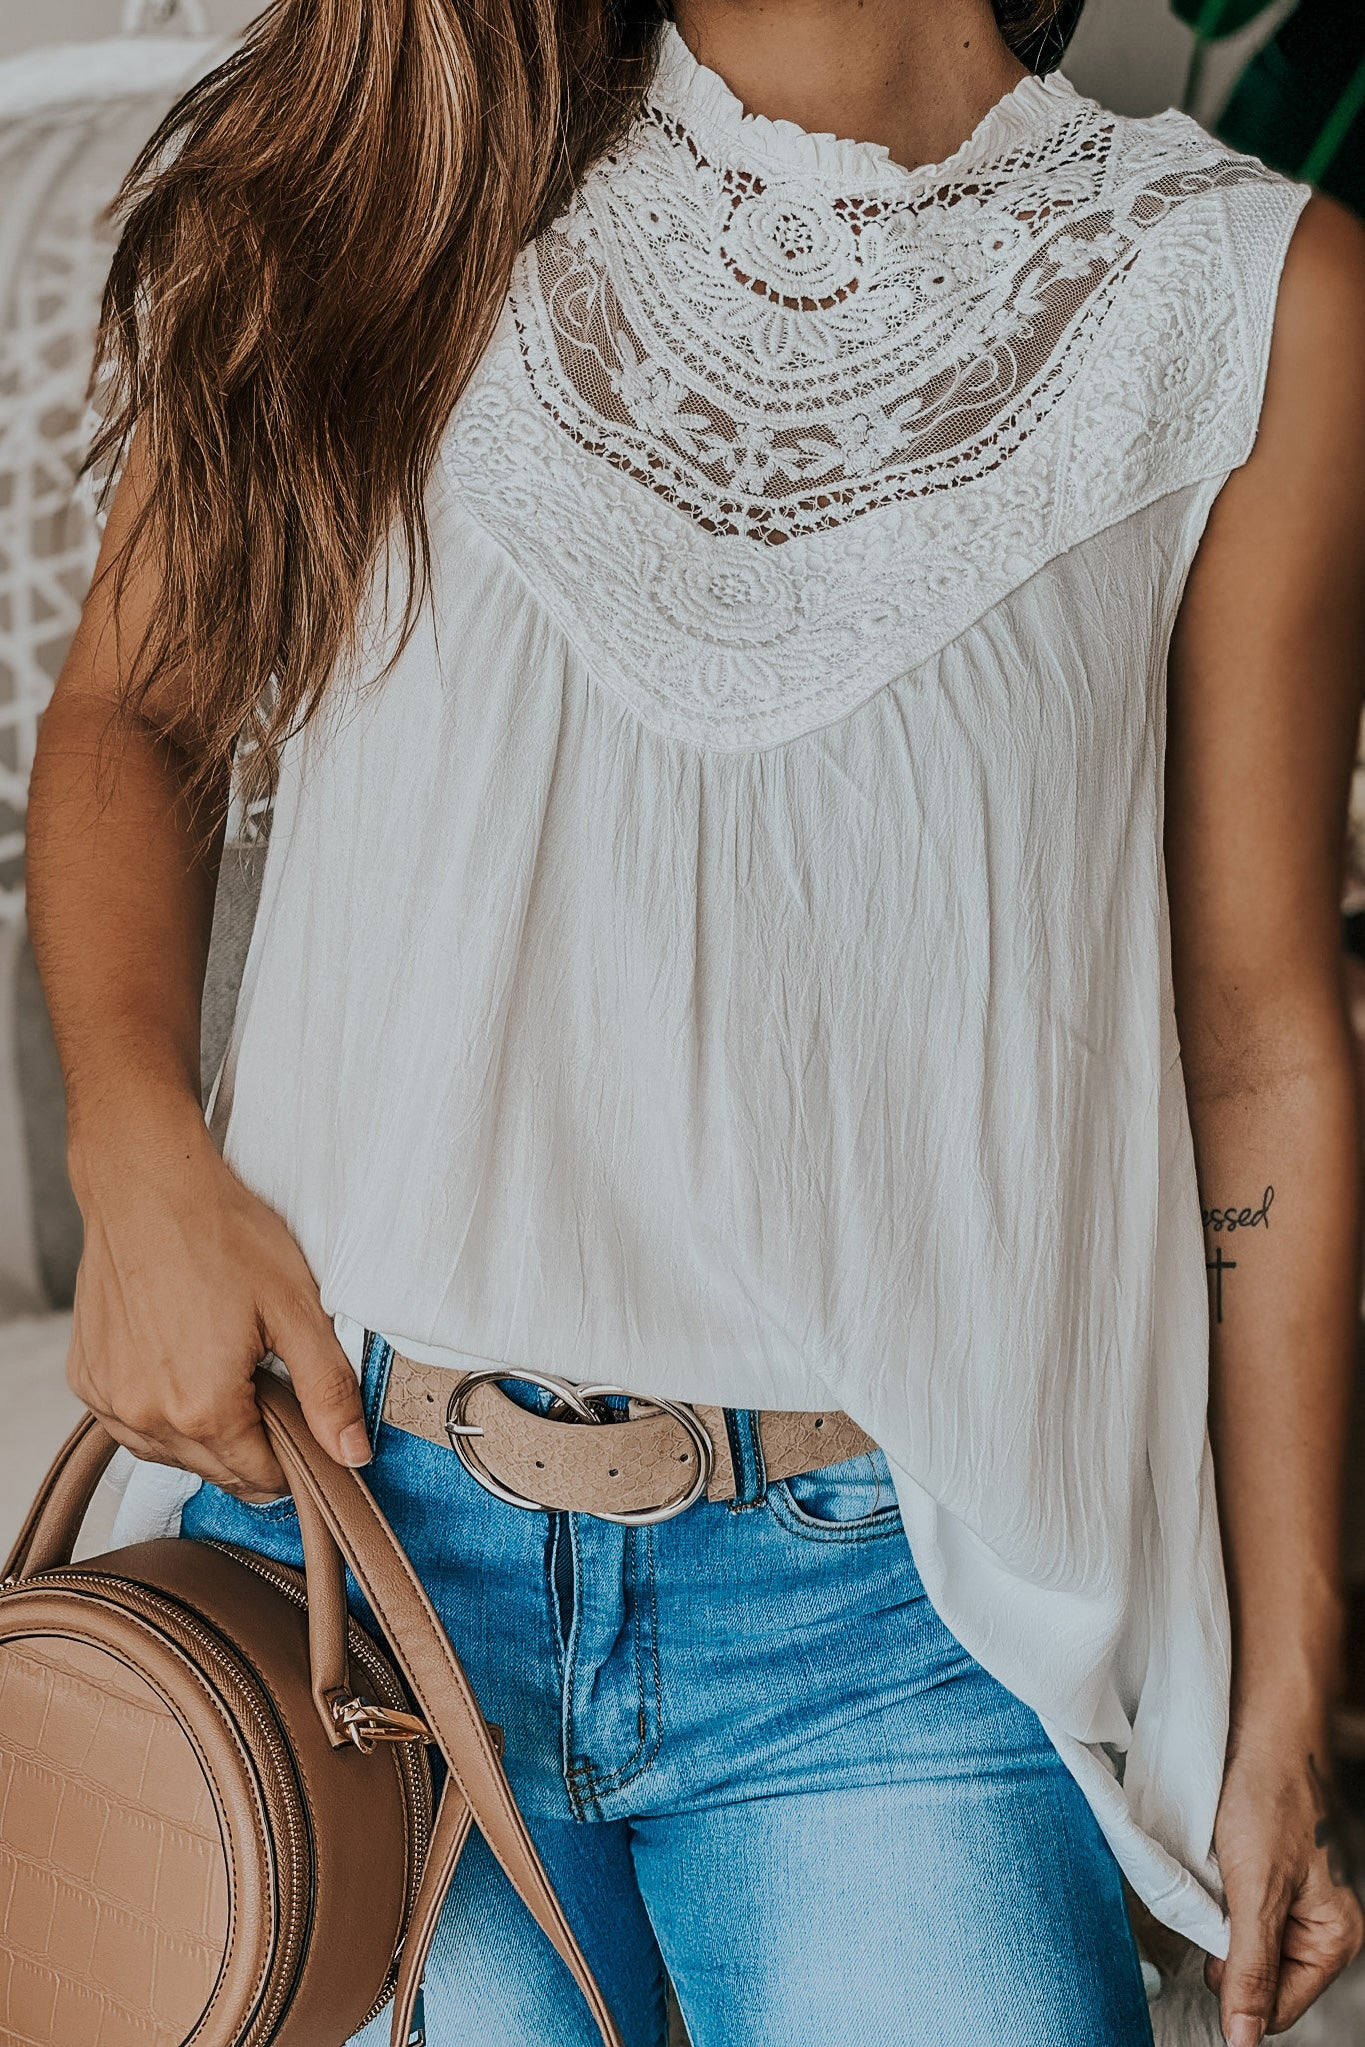 Off white top with crochet details